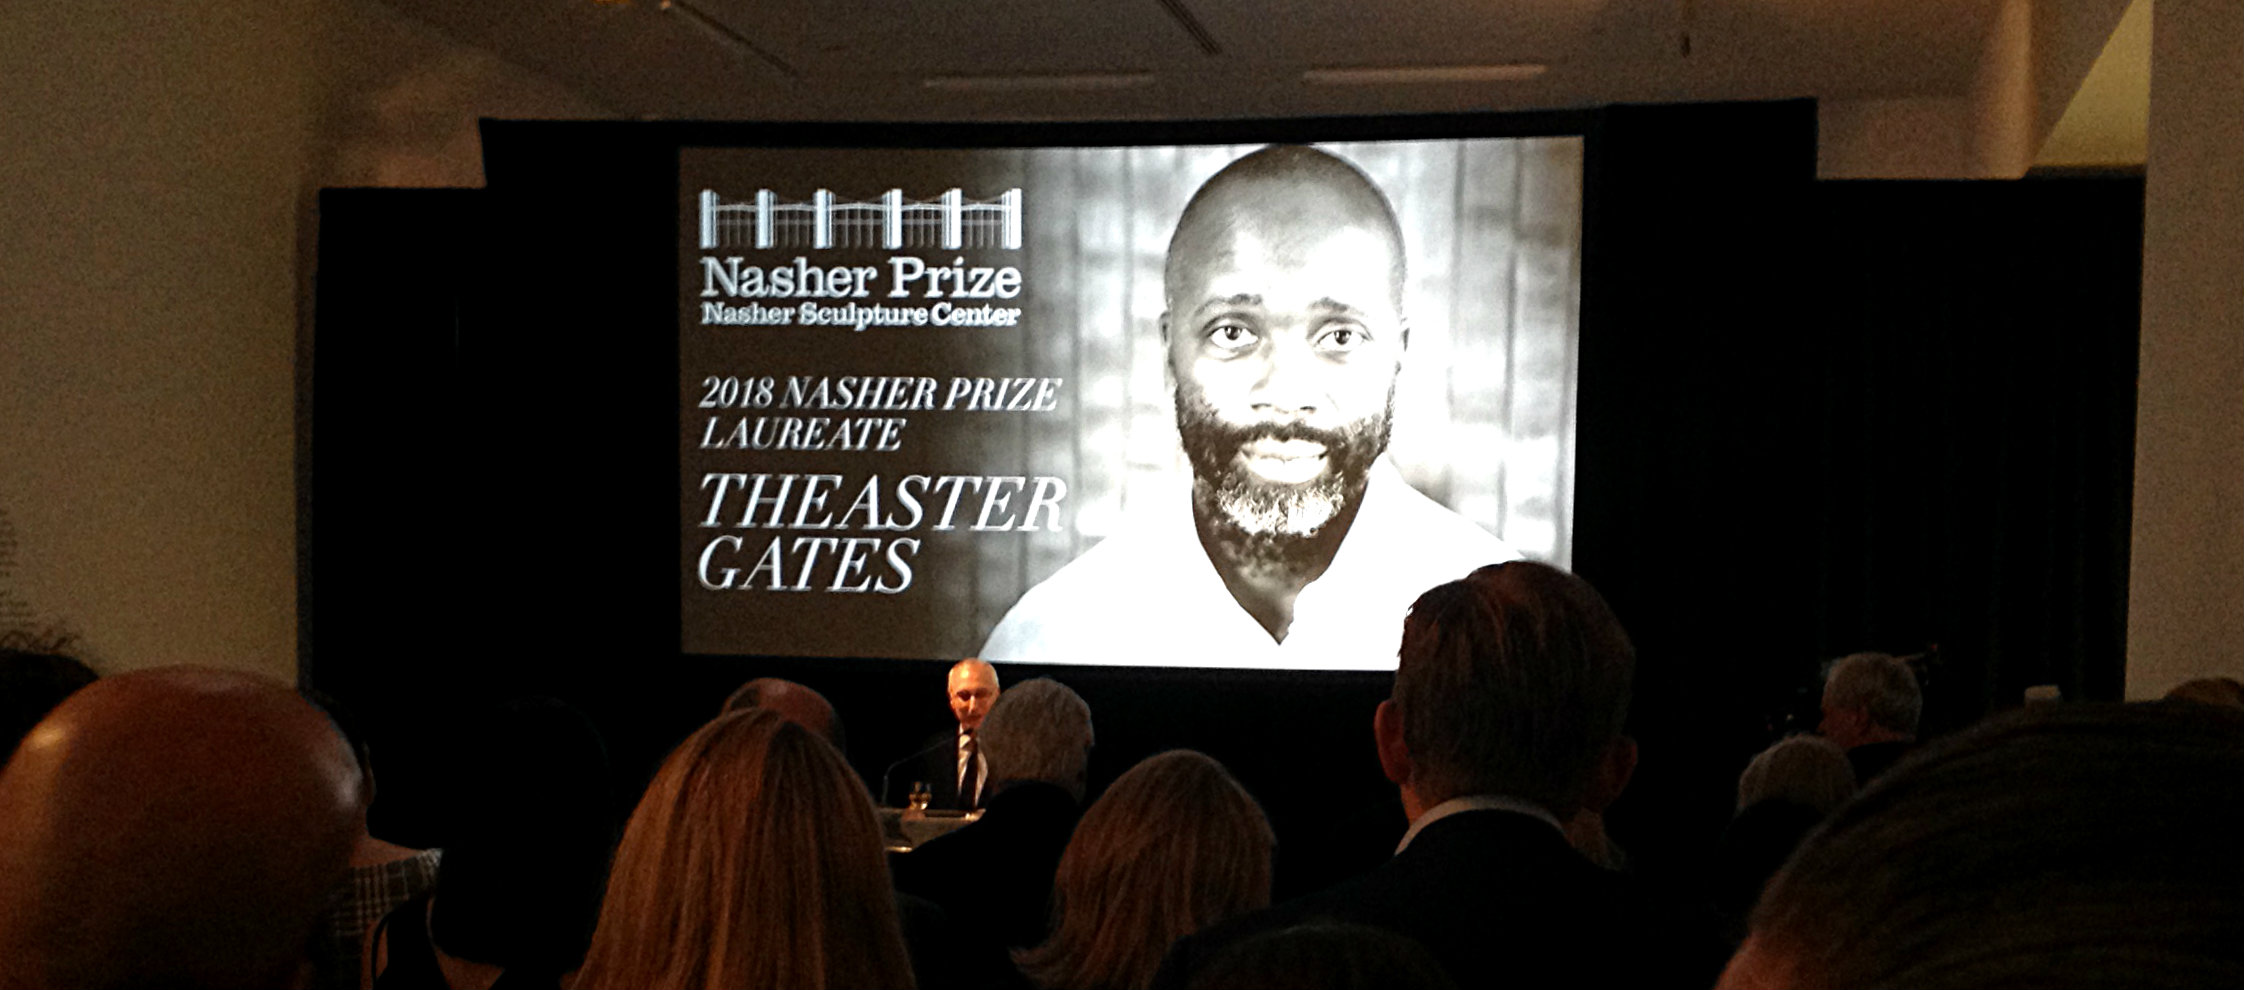 Theaster Gates announcement